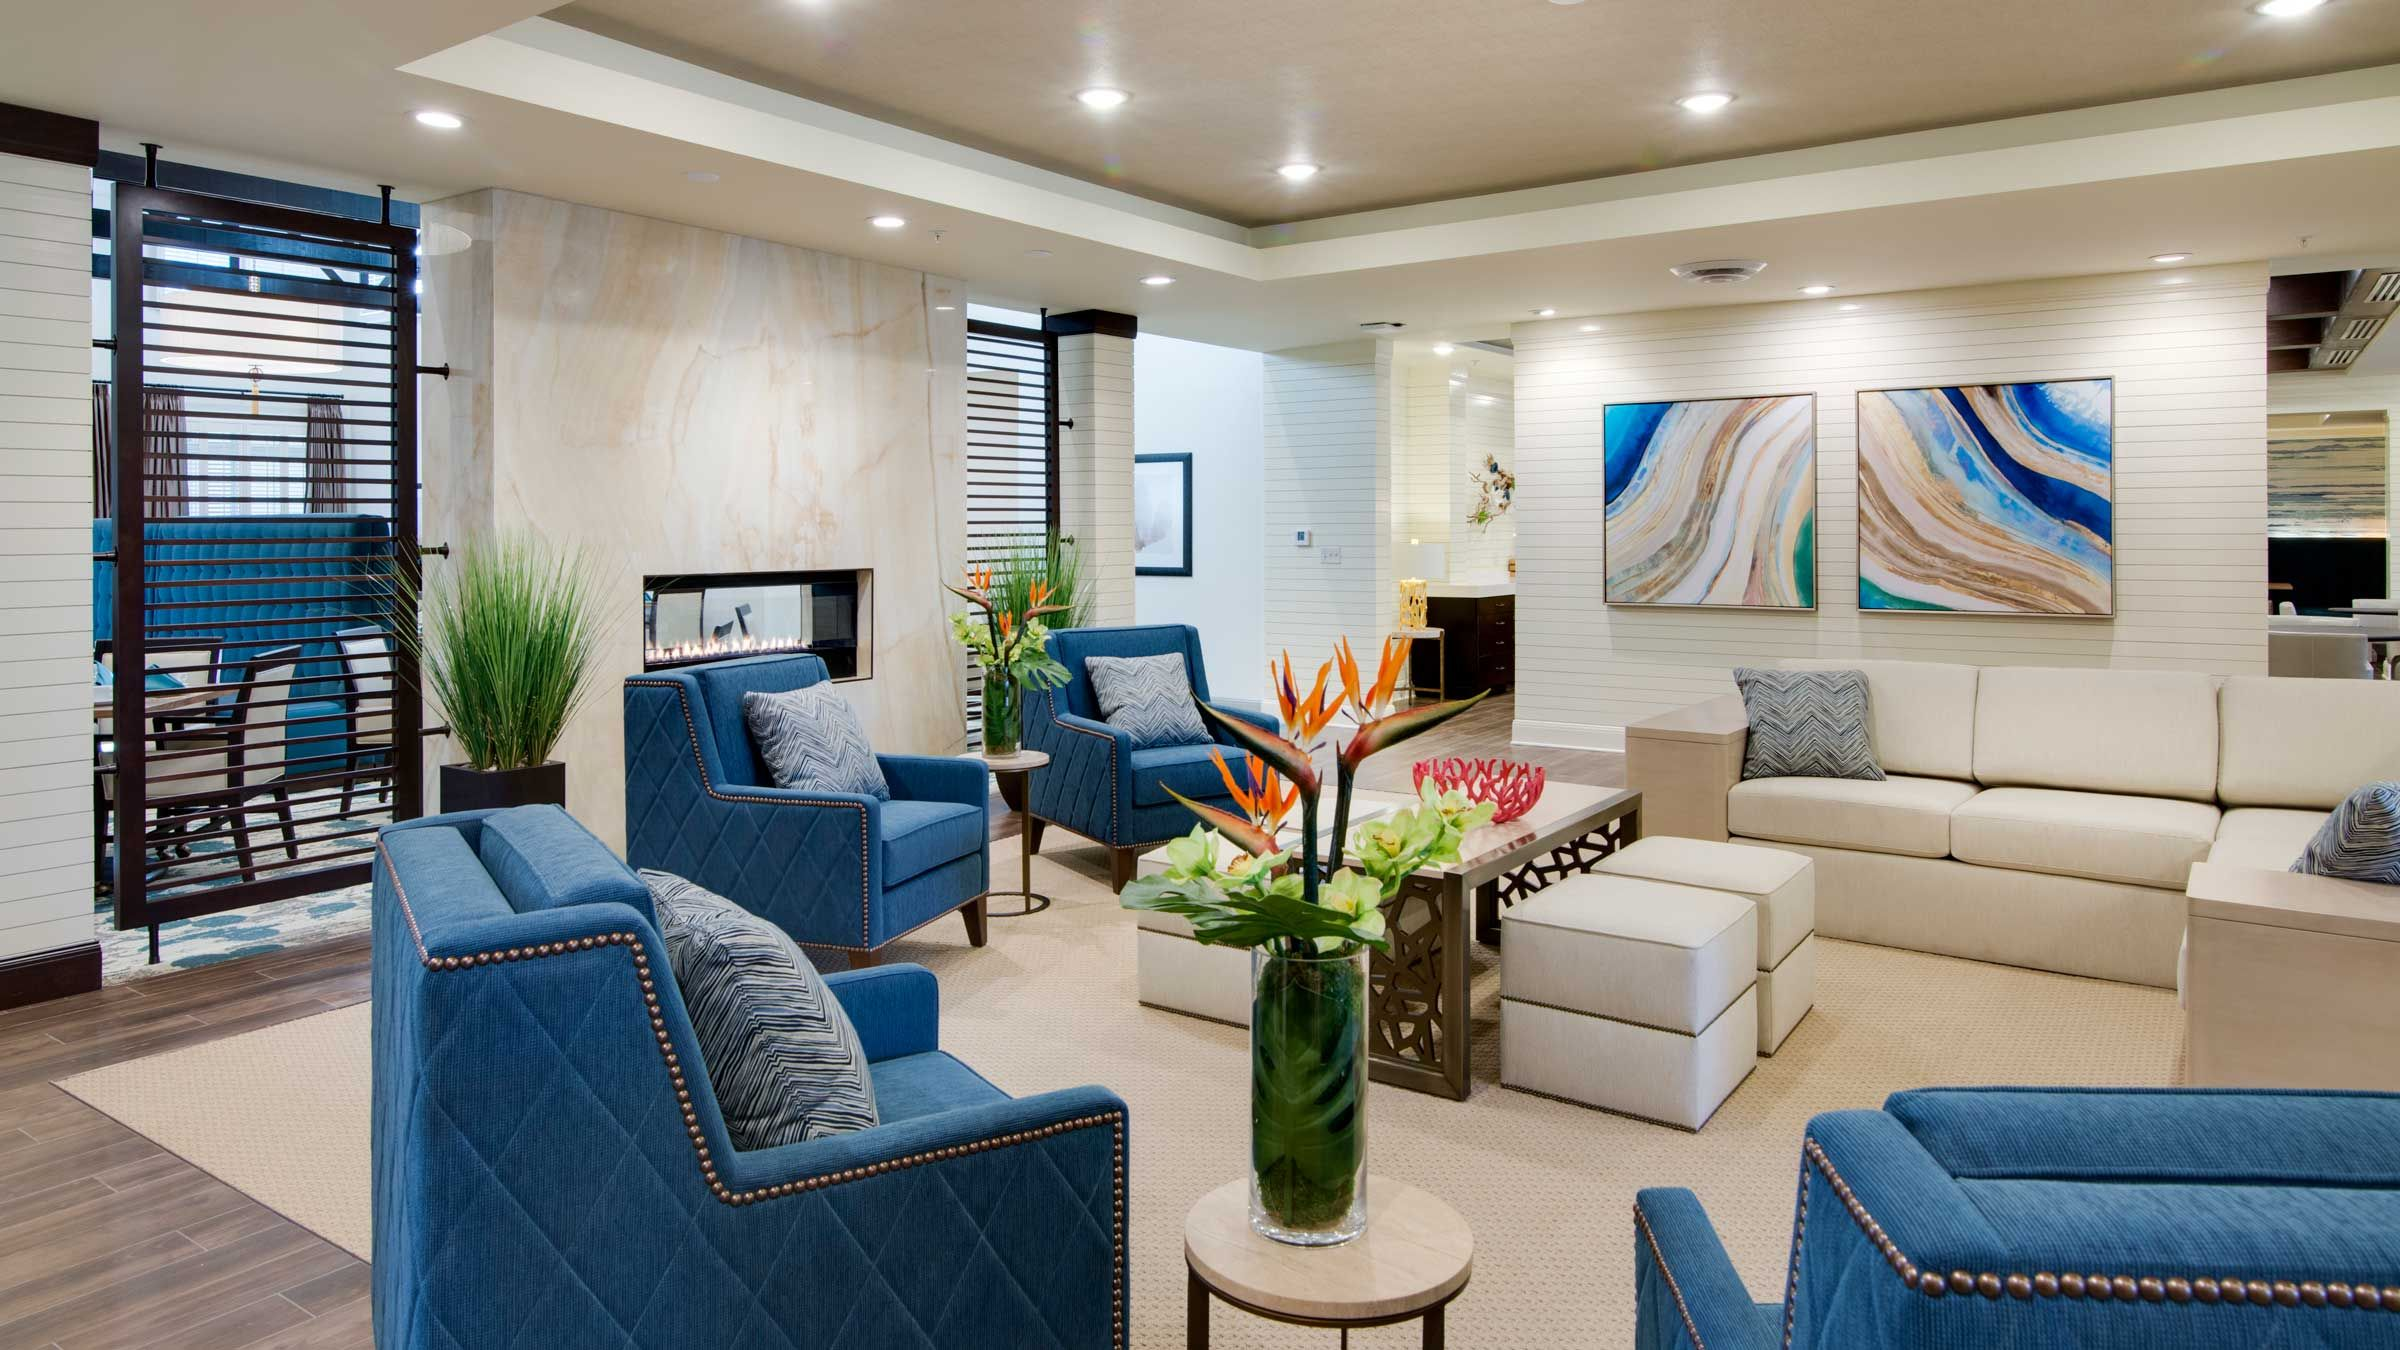 Assisted Living Facility in Nocatee, Florida